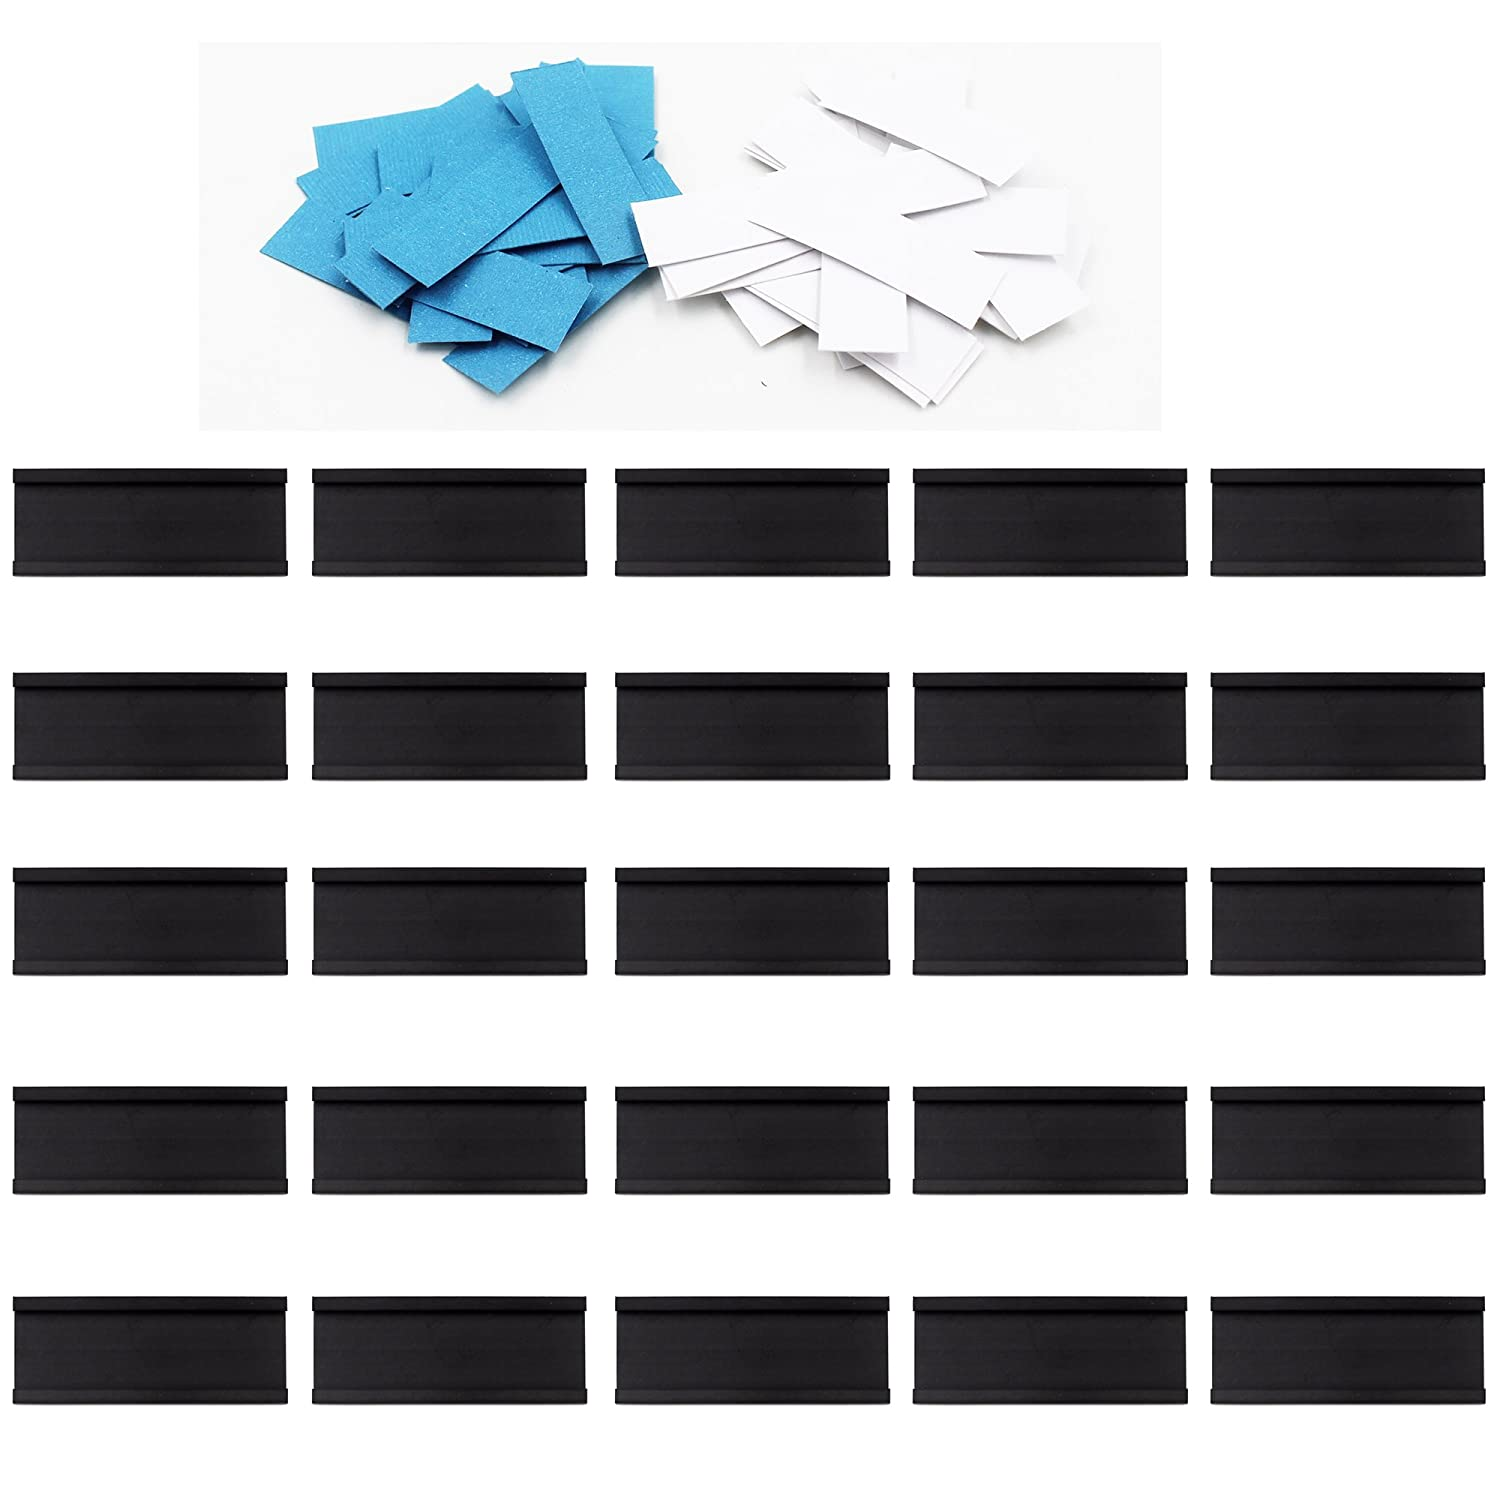 YYST 30 Magnetic Data Card Holders Lineup Tabs (0.5 x 1.5 Inches) - Magnetic Label C-Channel Shelf Labels - with 30 White Precut Cards and 30 Blue precut Cards Yi Ya Su